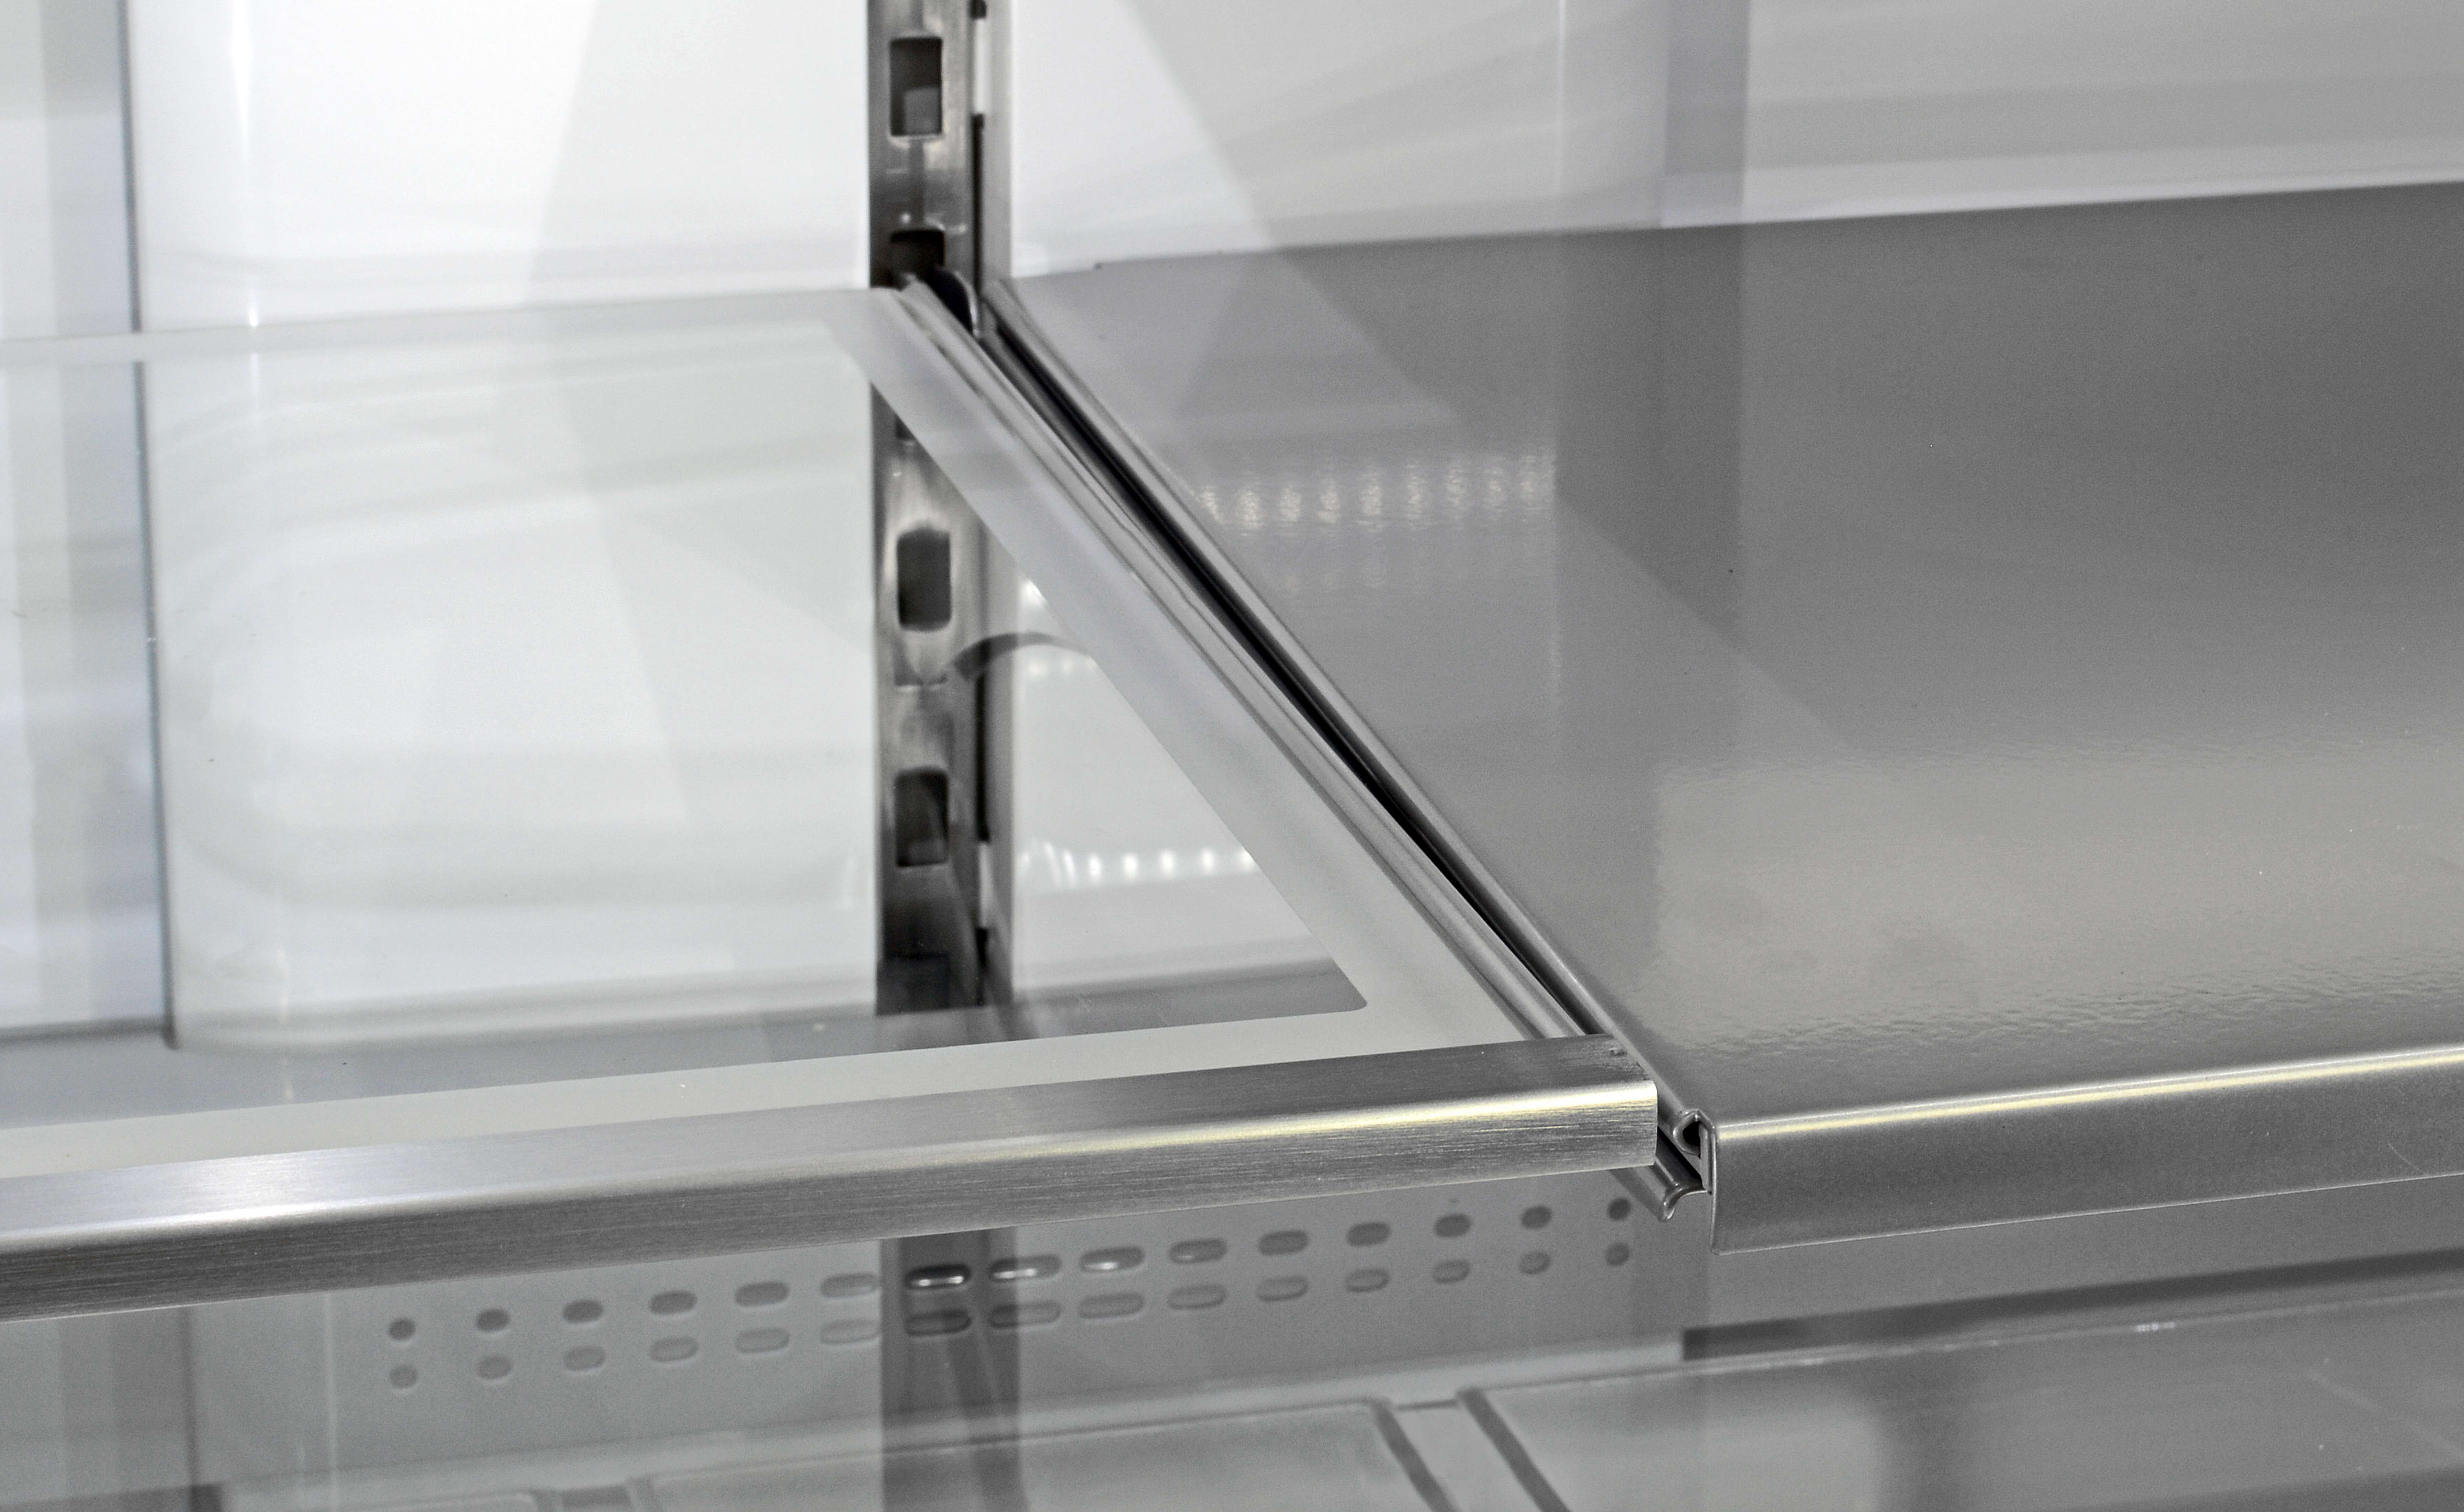 Stainless steel shelves give the Maytag MFX2876DRM's interior a unique look.